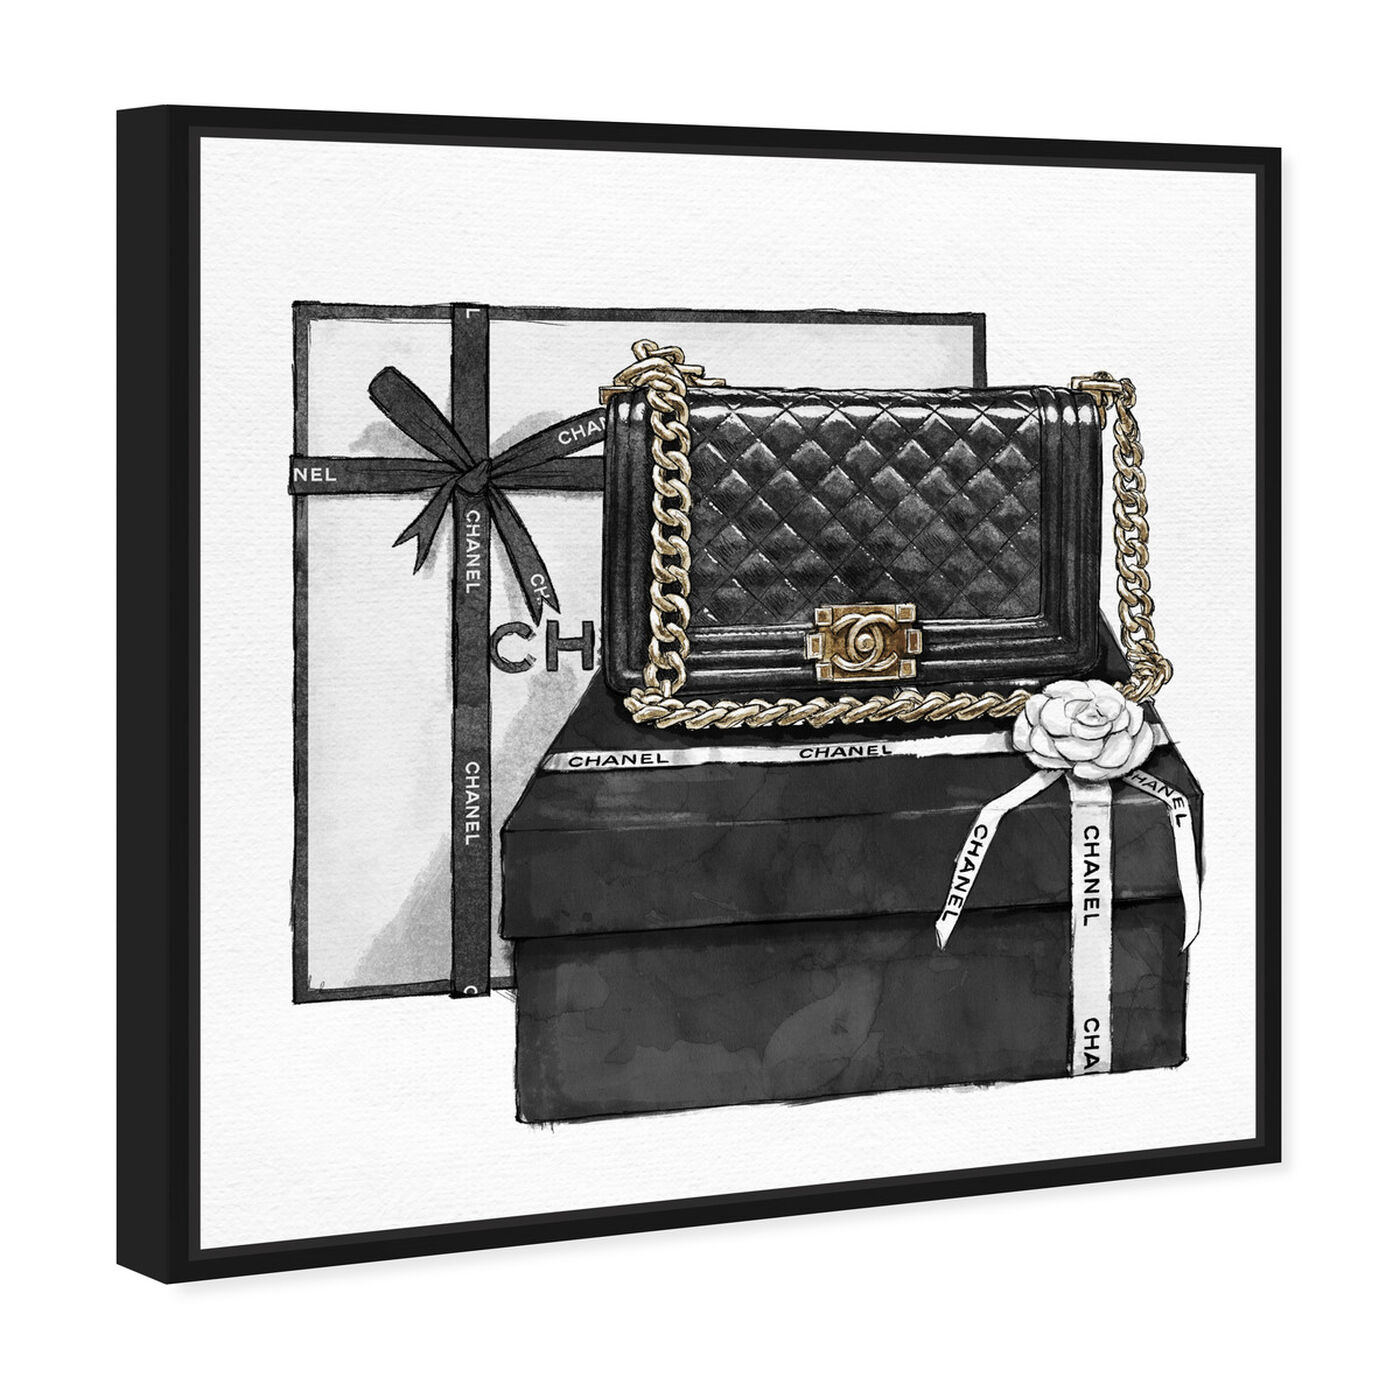 Angled view of Gifted Beauty featuring fashion and glam and handbags art.